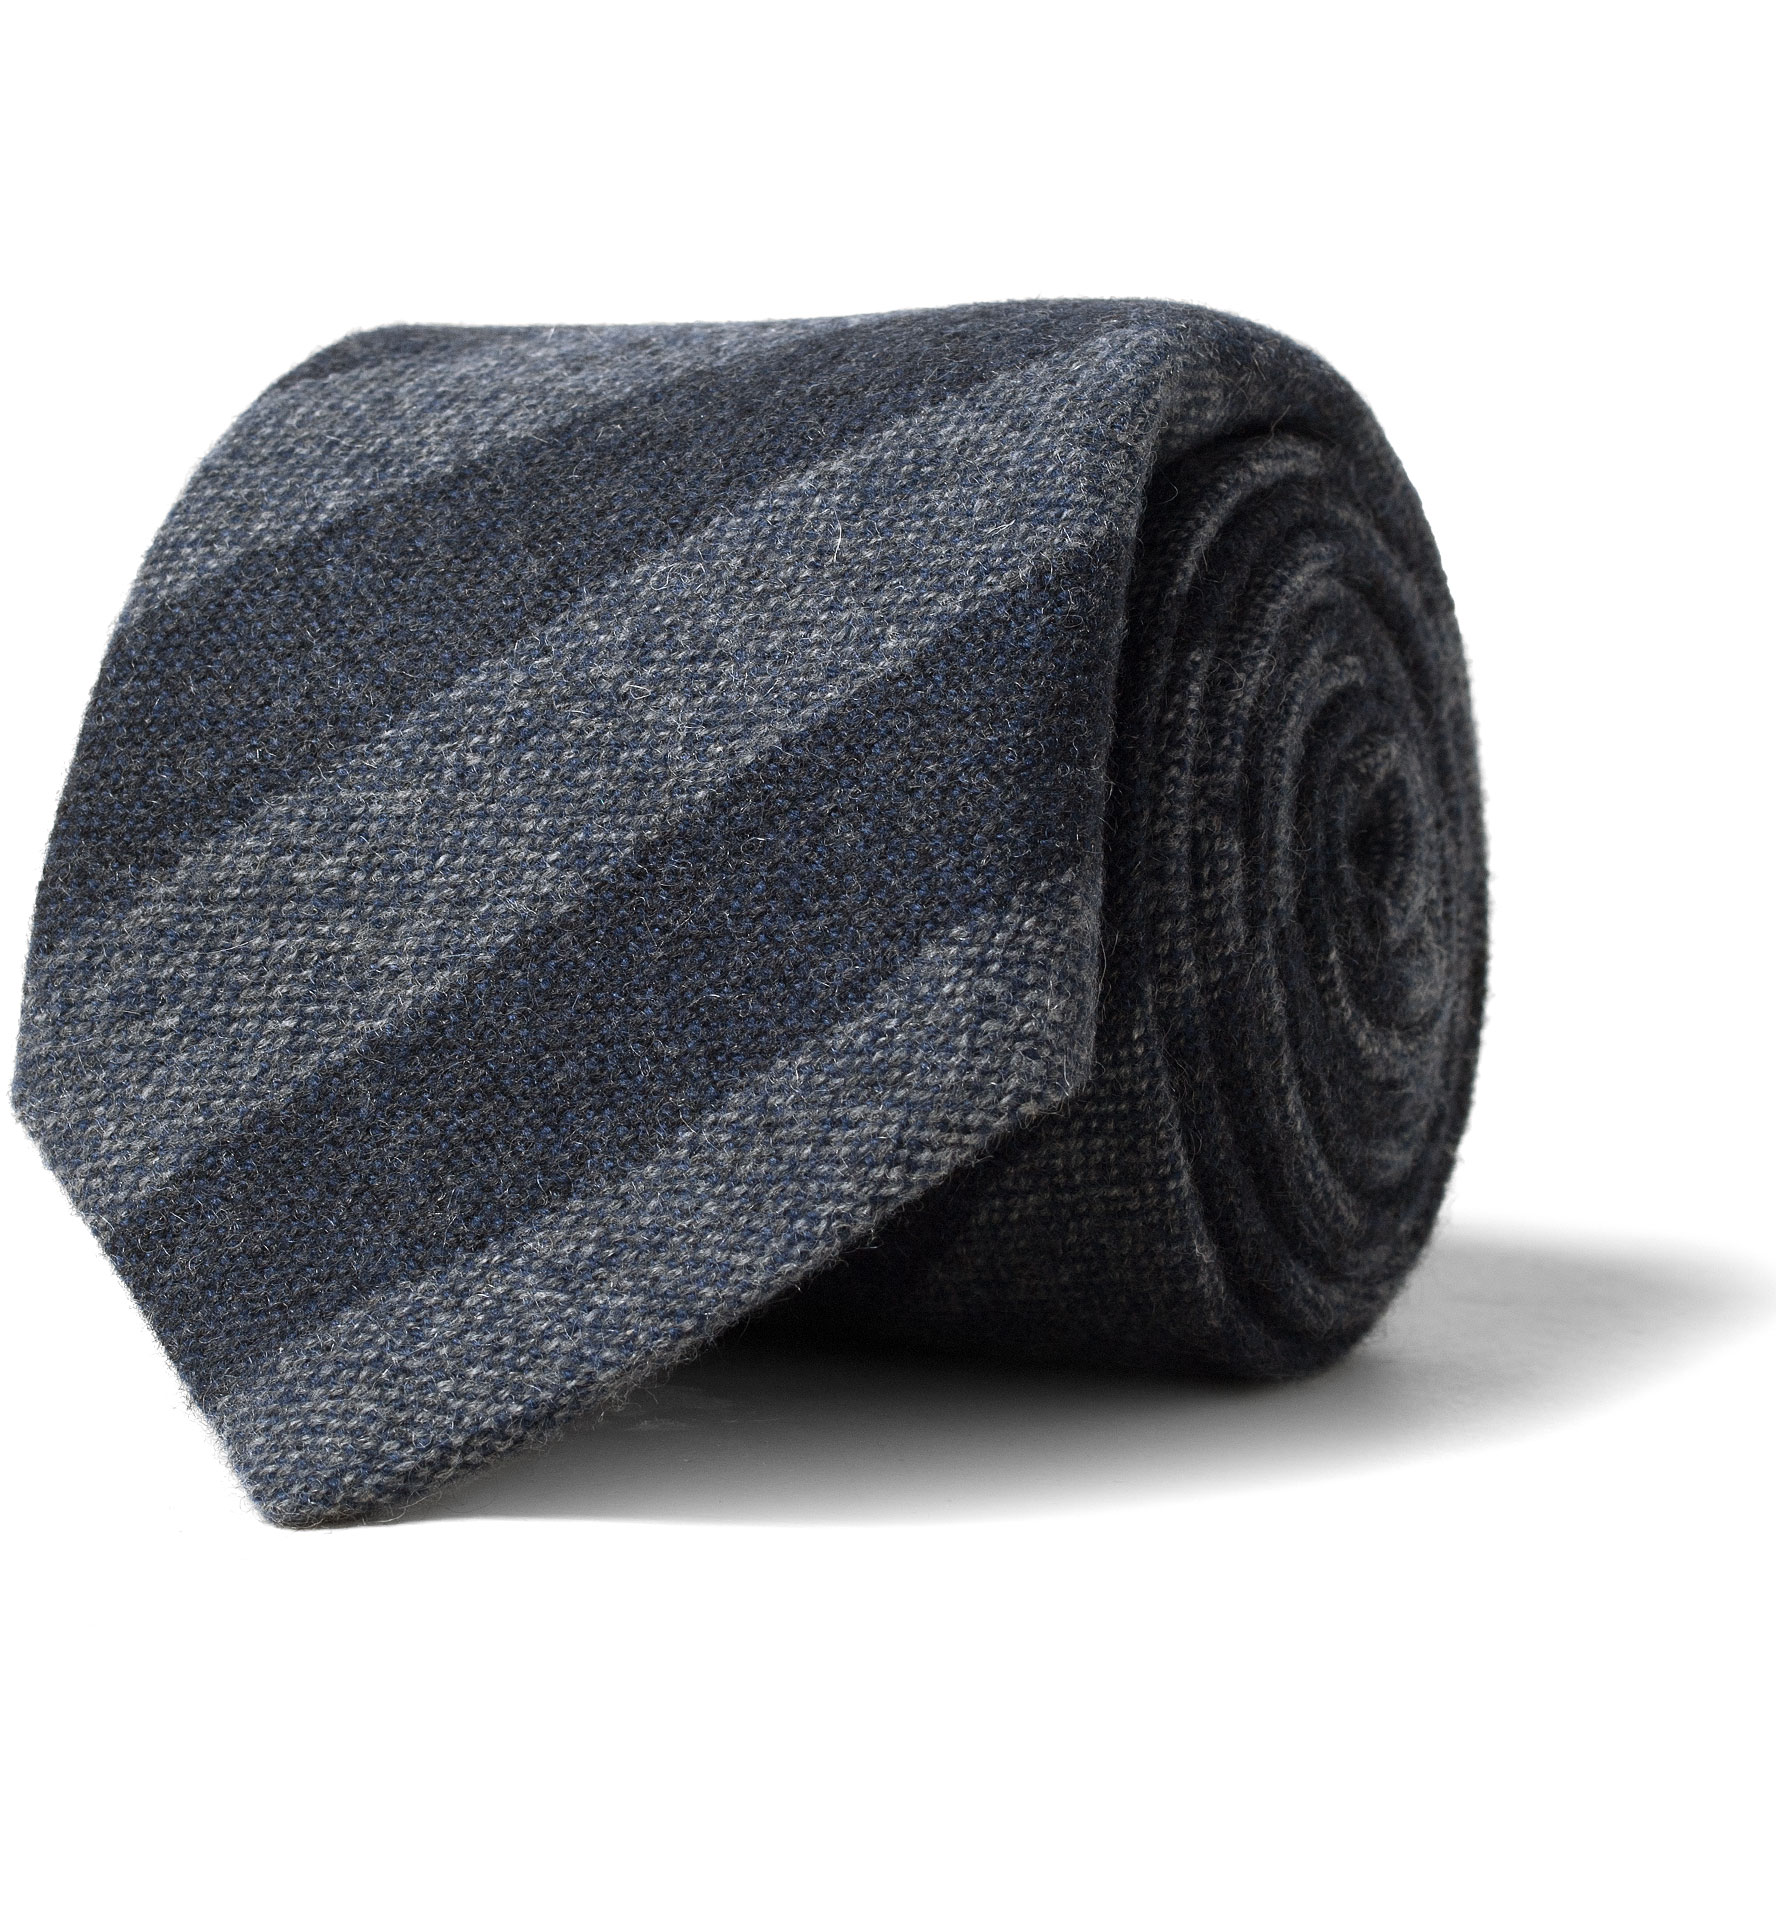 Zoom Image of Grey and Charcoal Striped Cashmere Tie